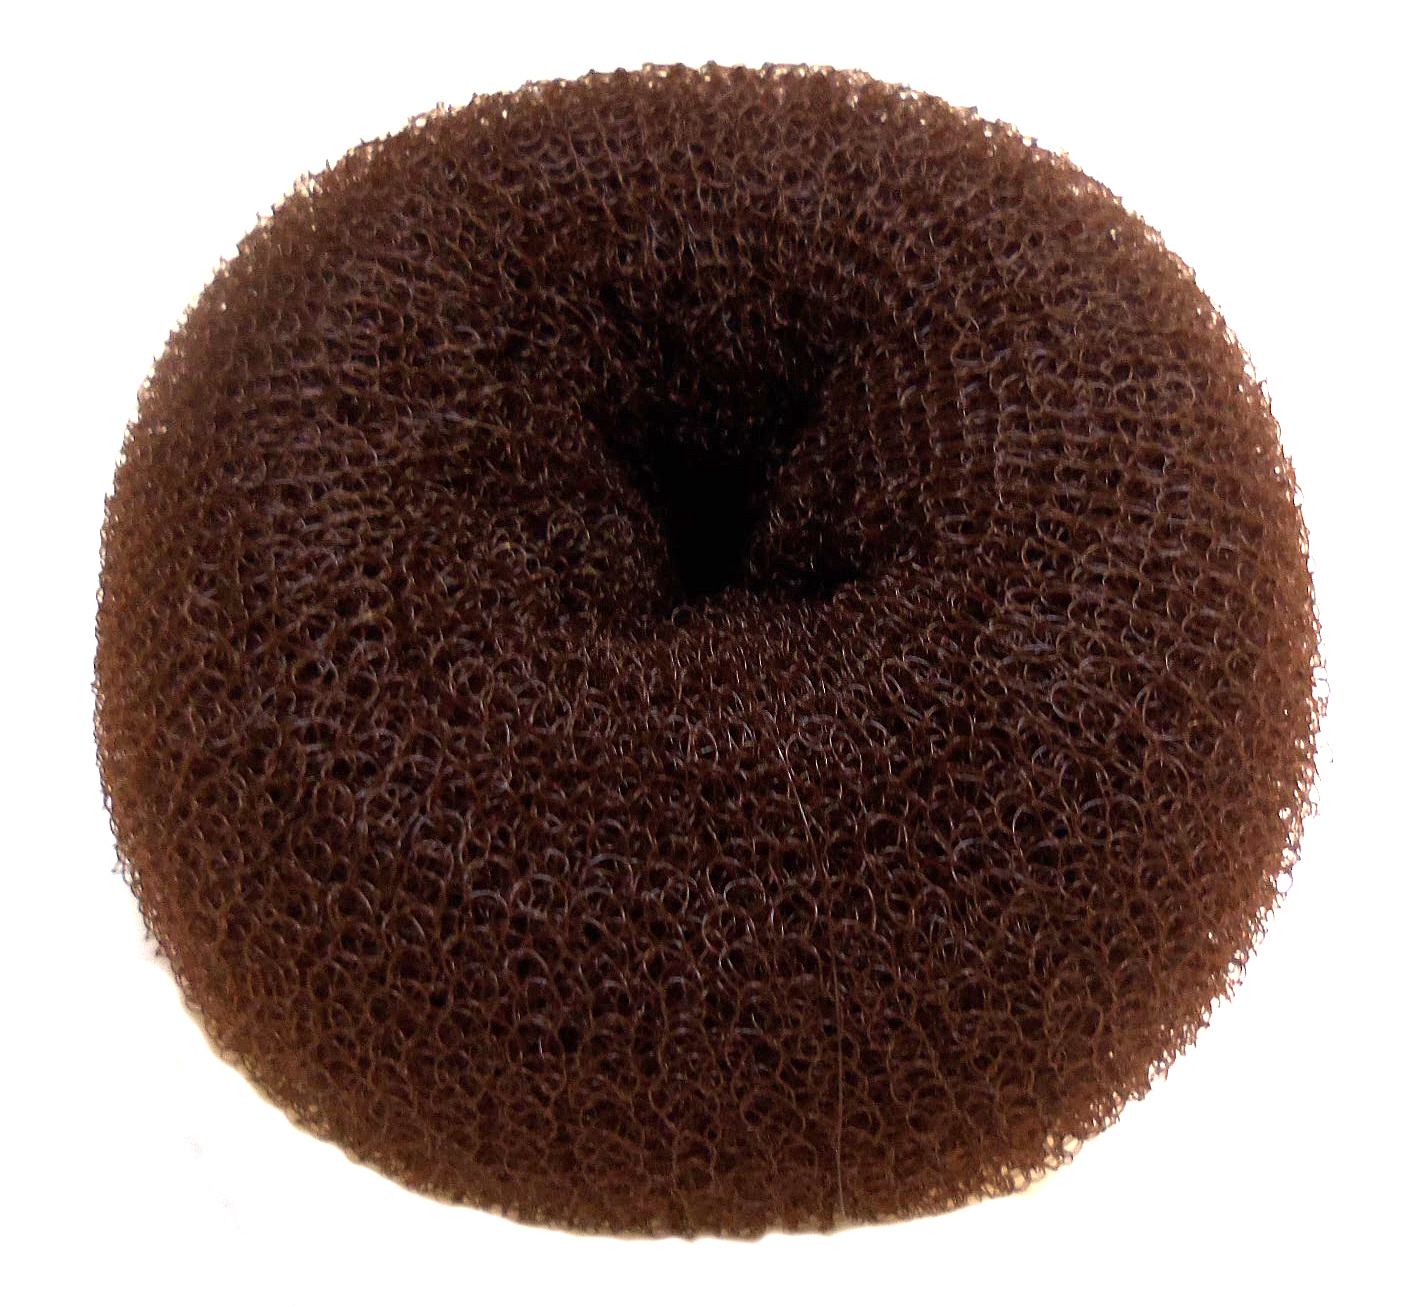 Hair Bun Makers. Beauty. Hair Care. Styling Accessories. Hair Bun Makers. Showing 40 of results that match your query. Search Product Result. Product - Bun Mesh Hair Shaper Styler Donut Former Ring Bun Maker Size and Colour Choice. Reduced Price. Product Image. Price $ 2. Product Title.